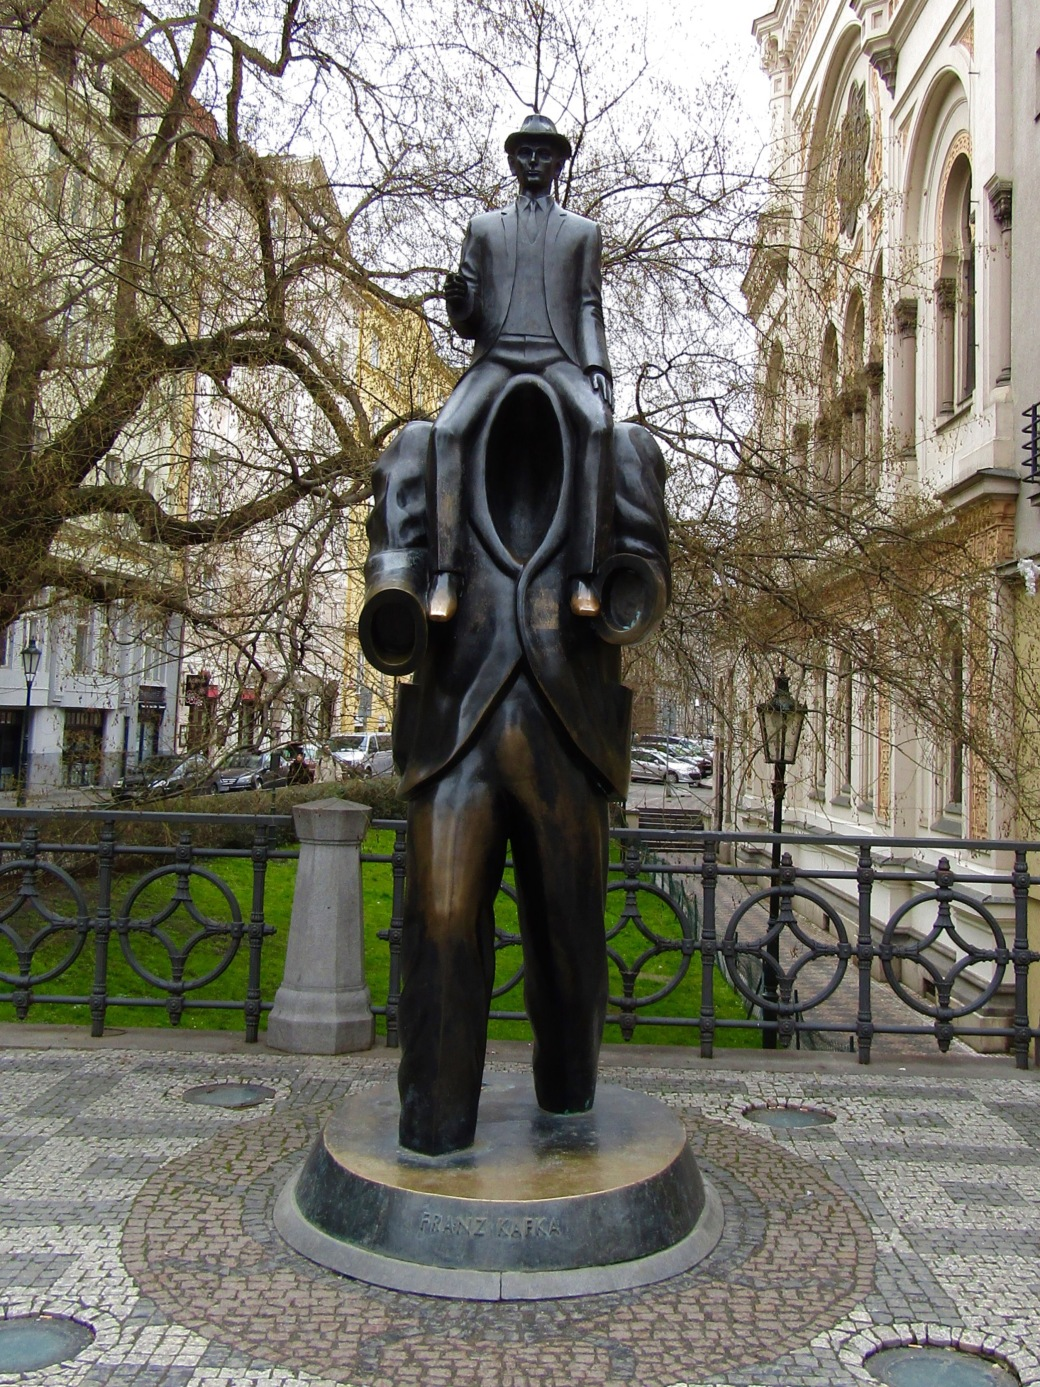 Prague's official Franz Kafka monument shows the author sitting on the shoulders of a headless man, inspired by his short story Description of a Struggle.